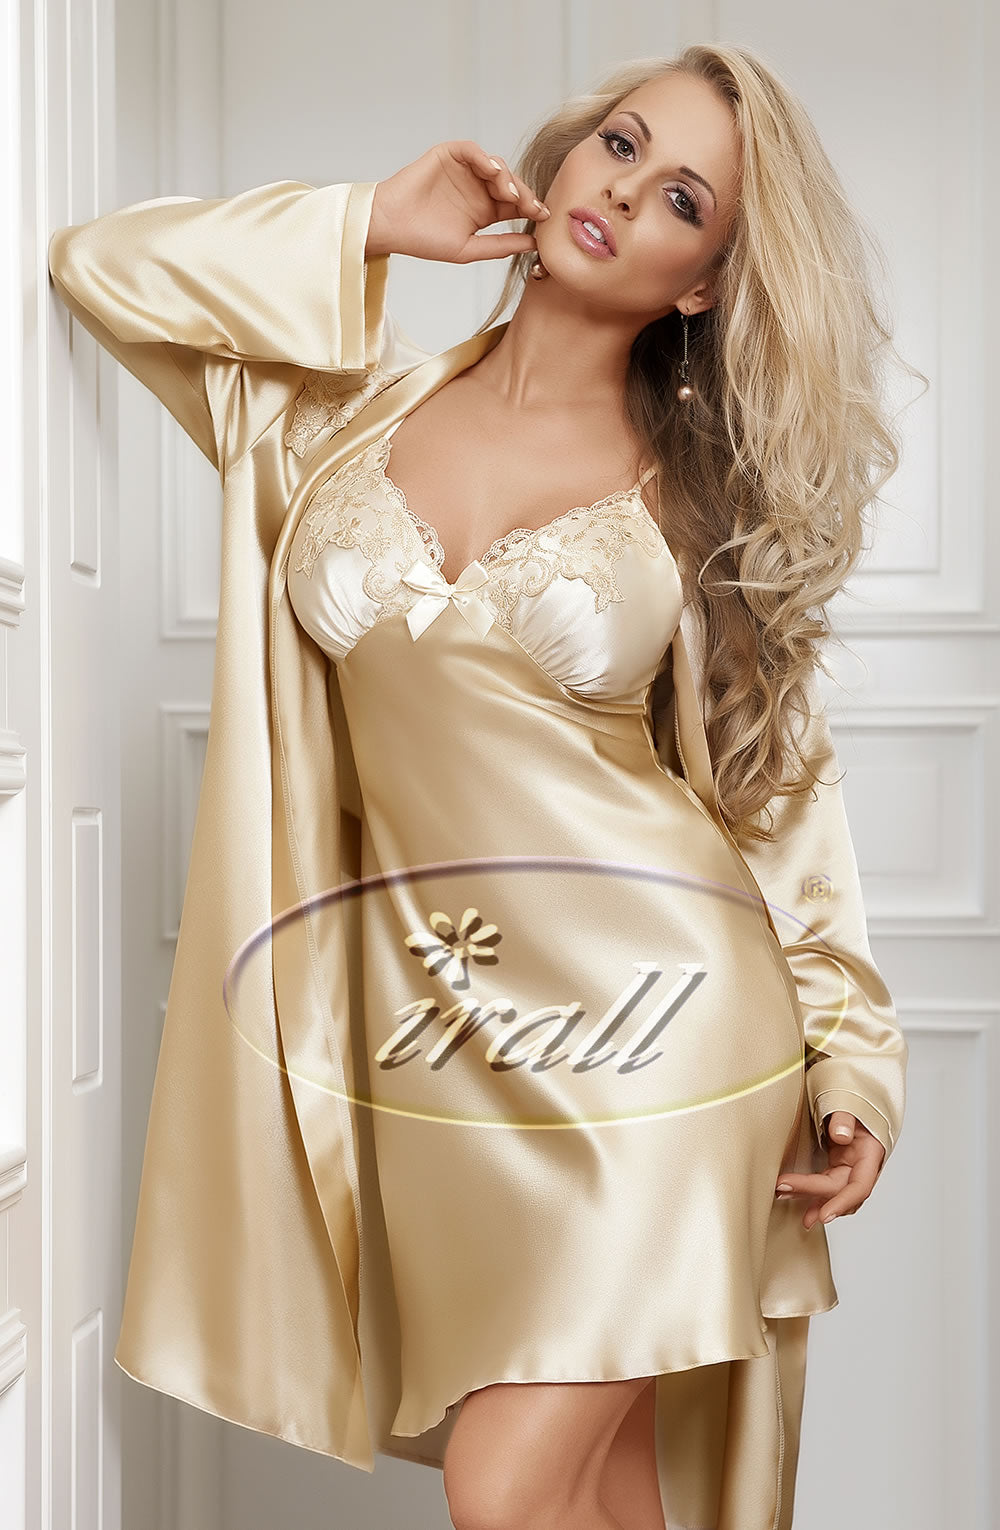 Irall Parisa Nightdress  Irall, NEWLY-IMPORTED, Nightdresses, Nightwear, Plus Sizes - So Luxe Lingerie